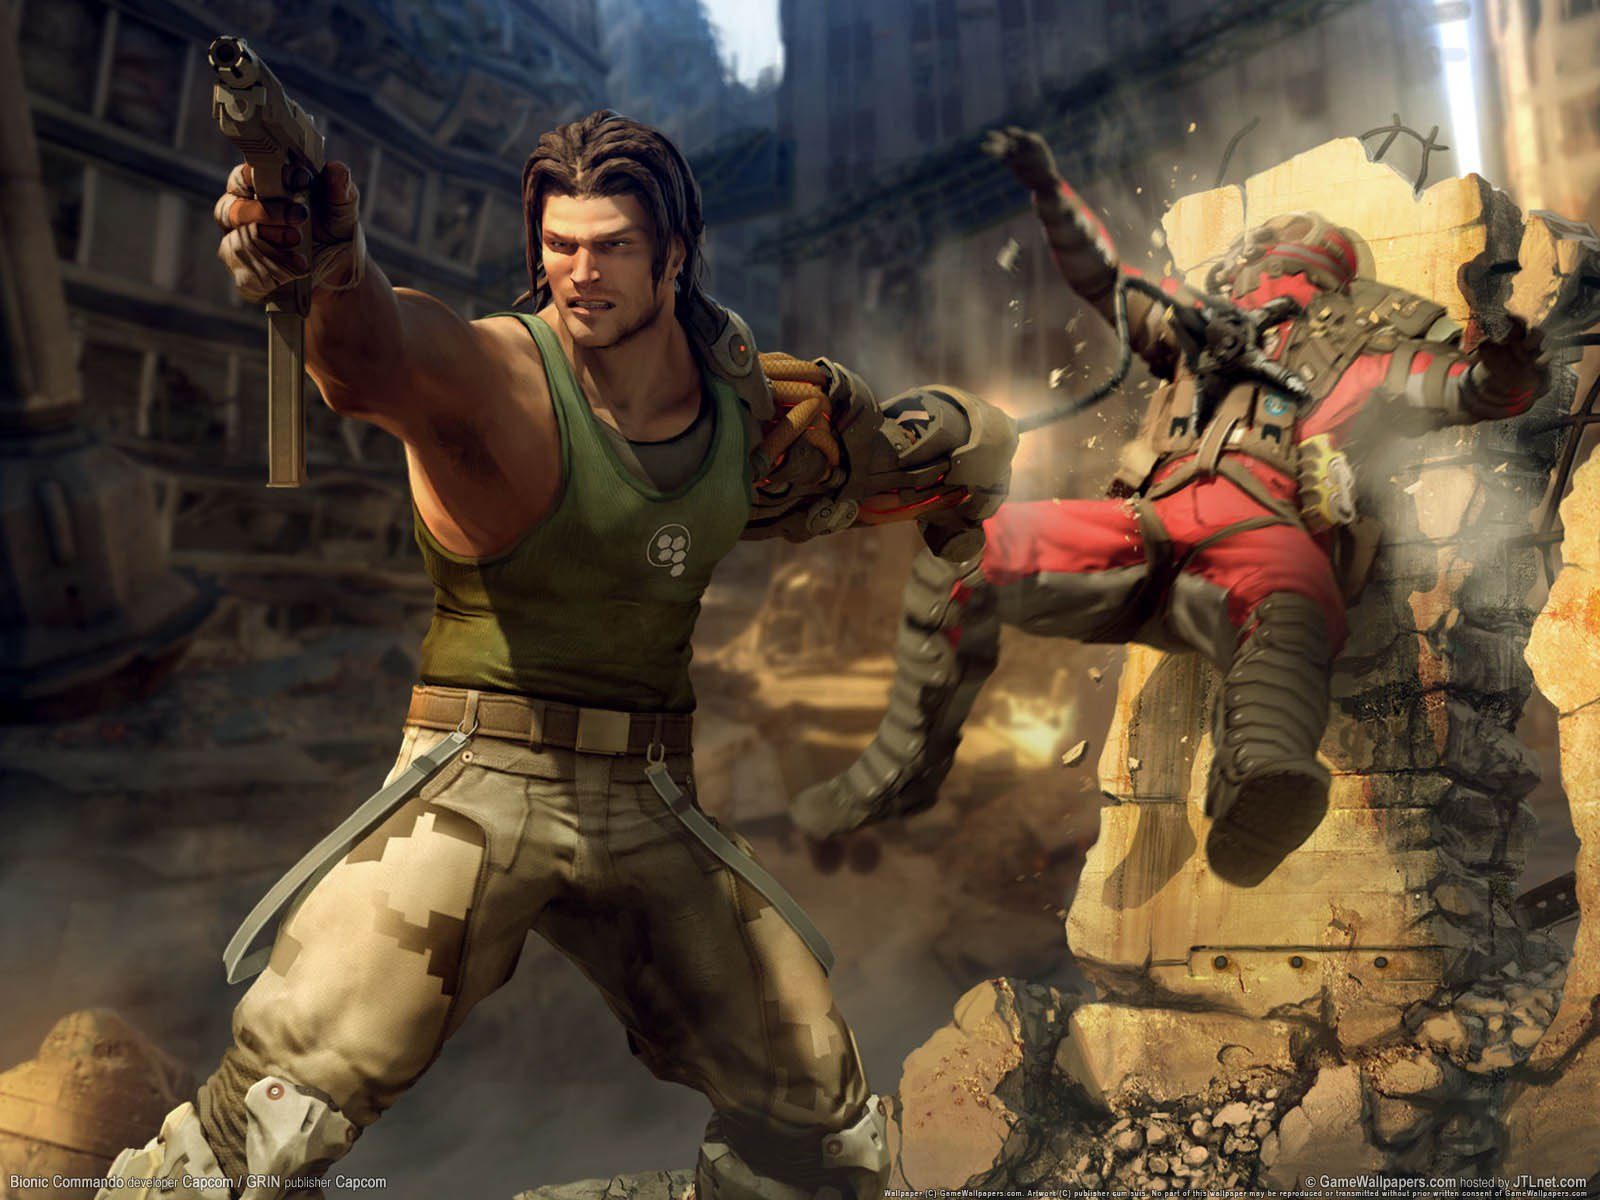 Nathan Spencer (Bionic Commando)